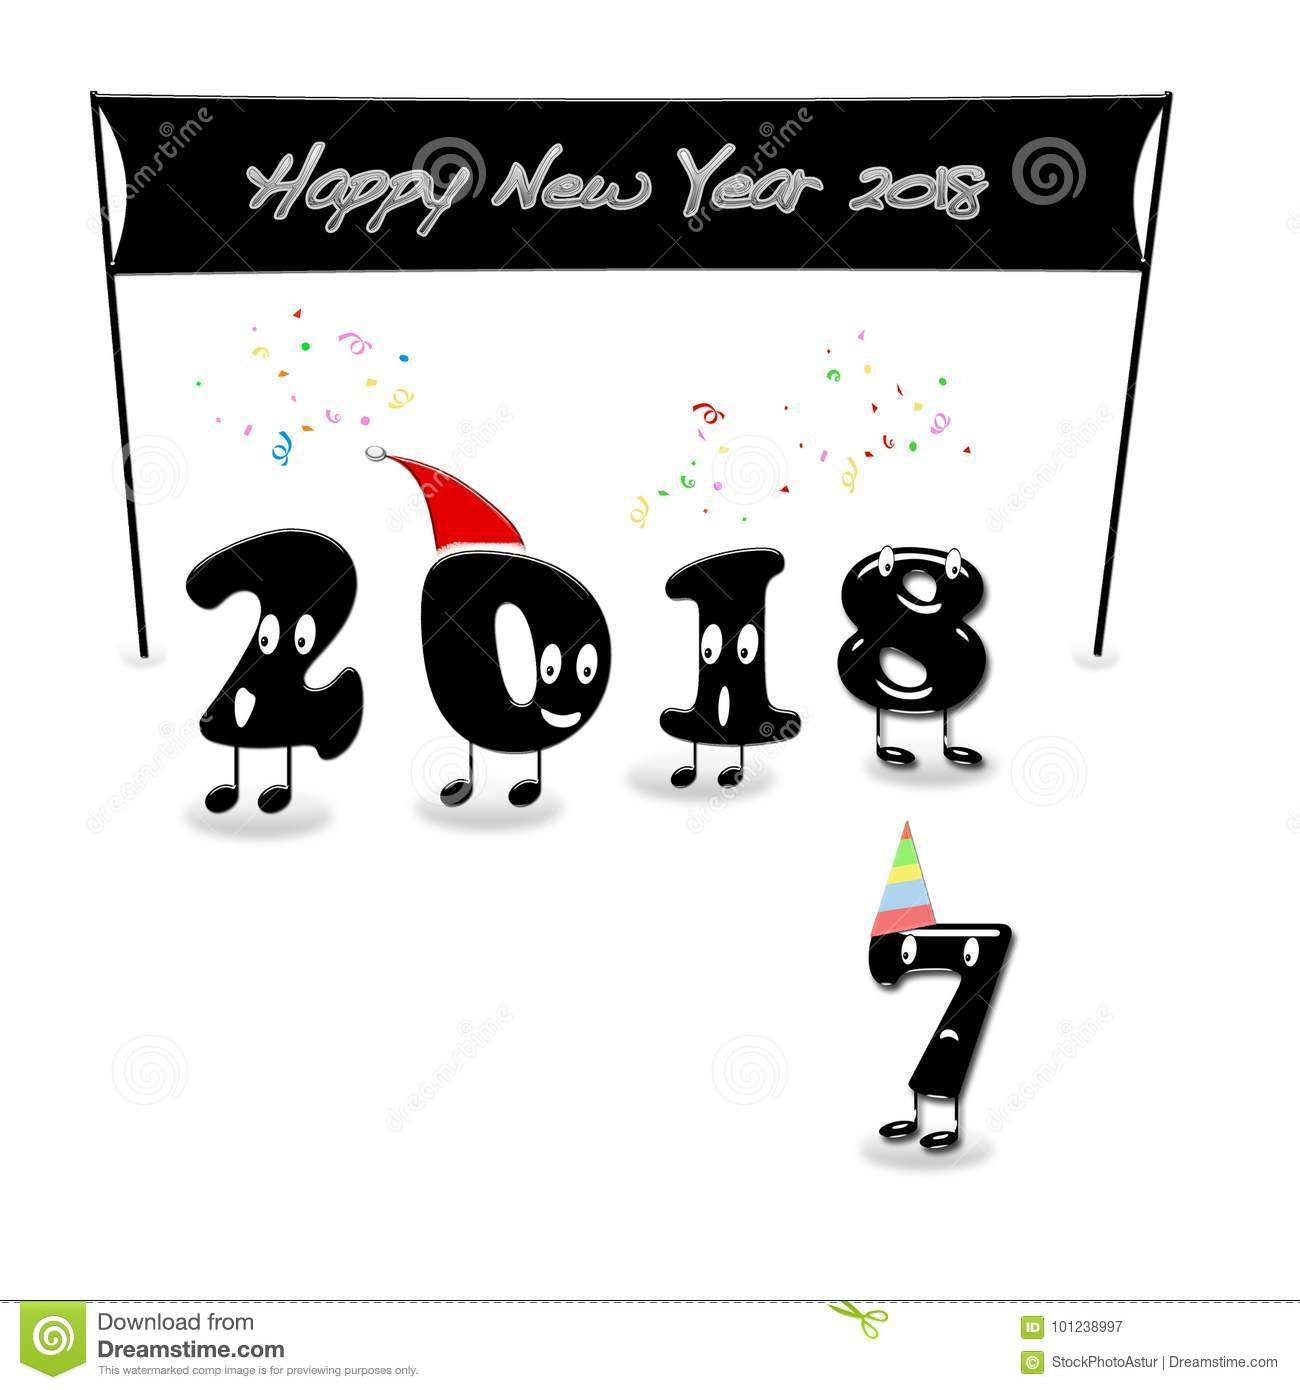 animated numerals of 2018 year congratulating with new year